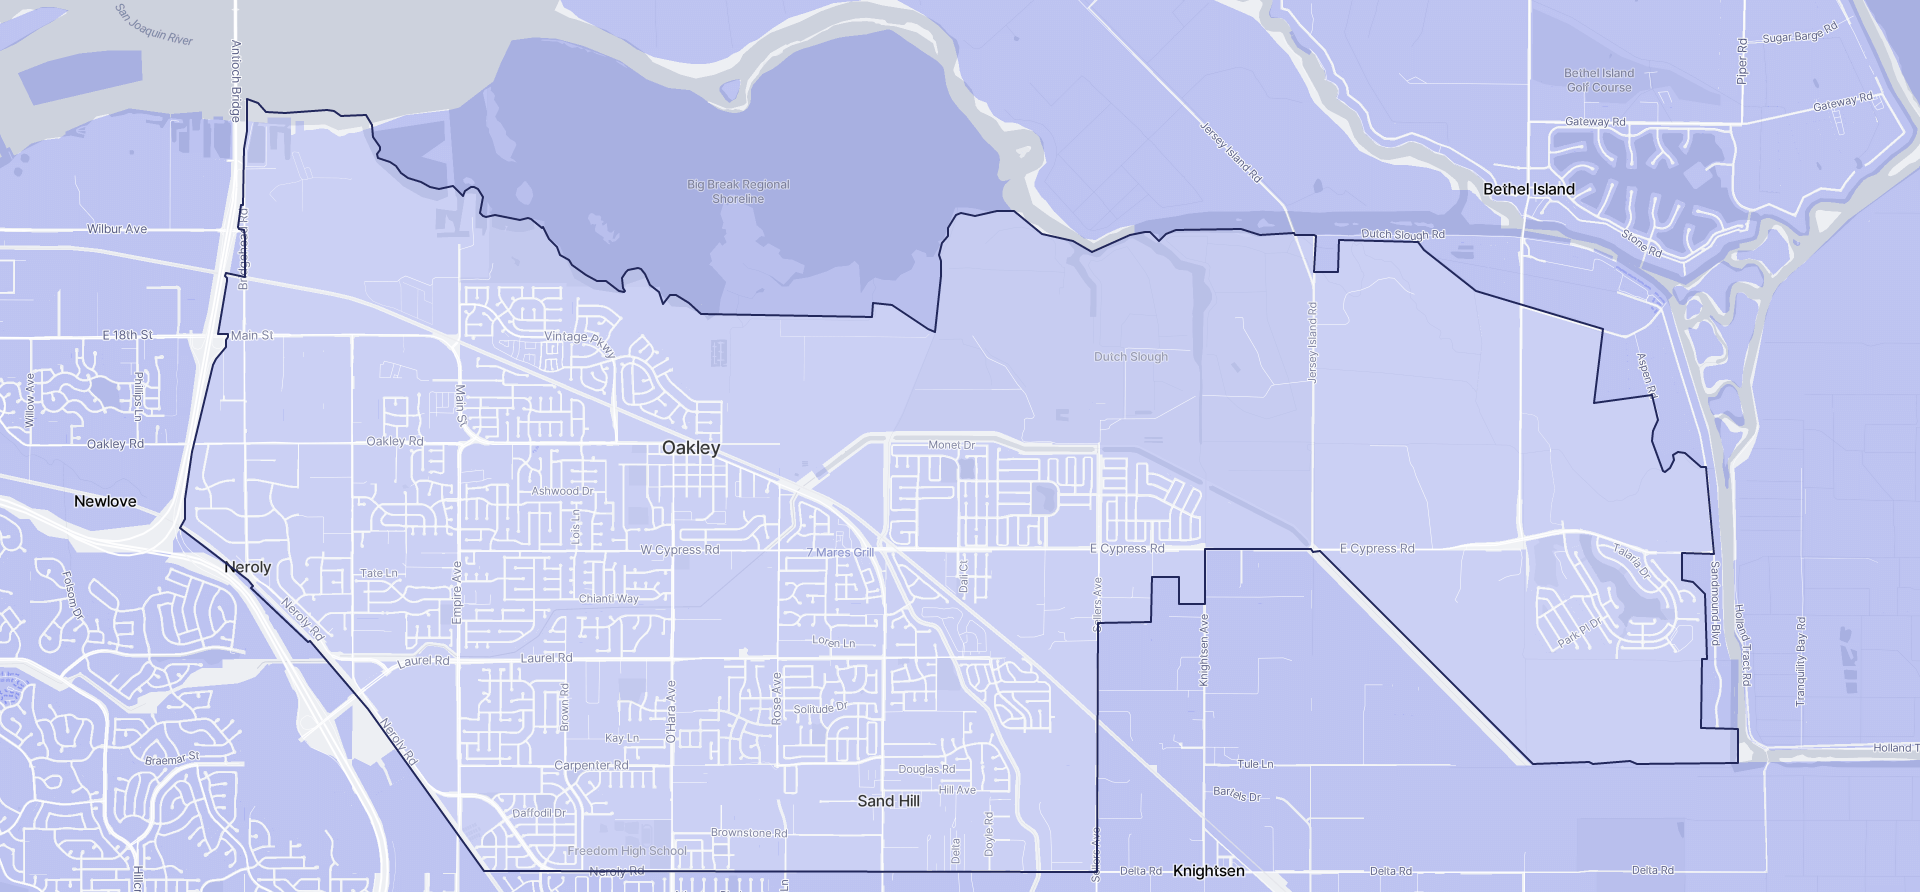 Image of Oakley boundaries on a map.